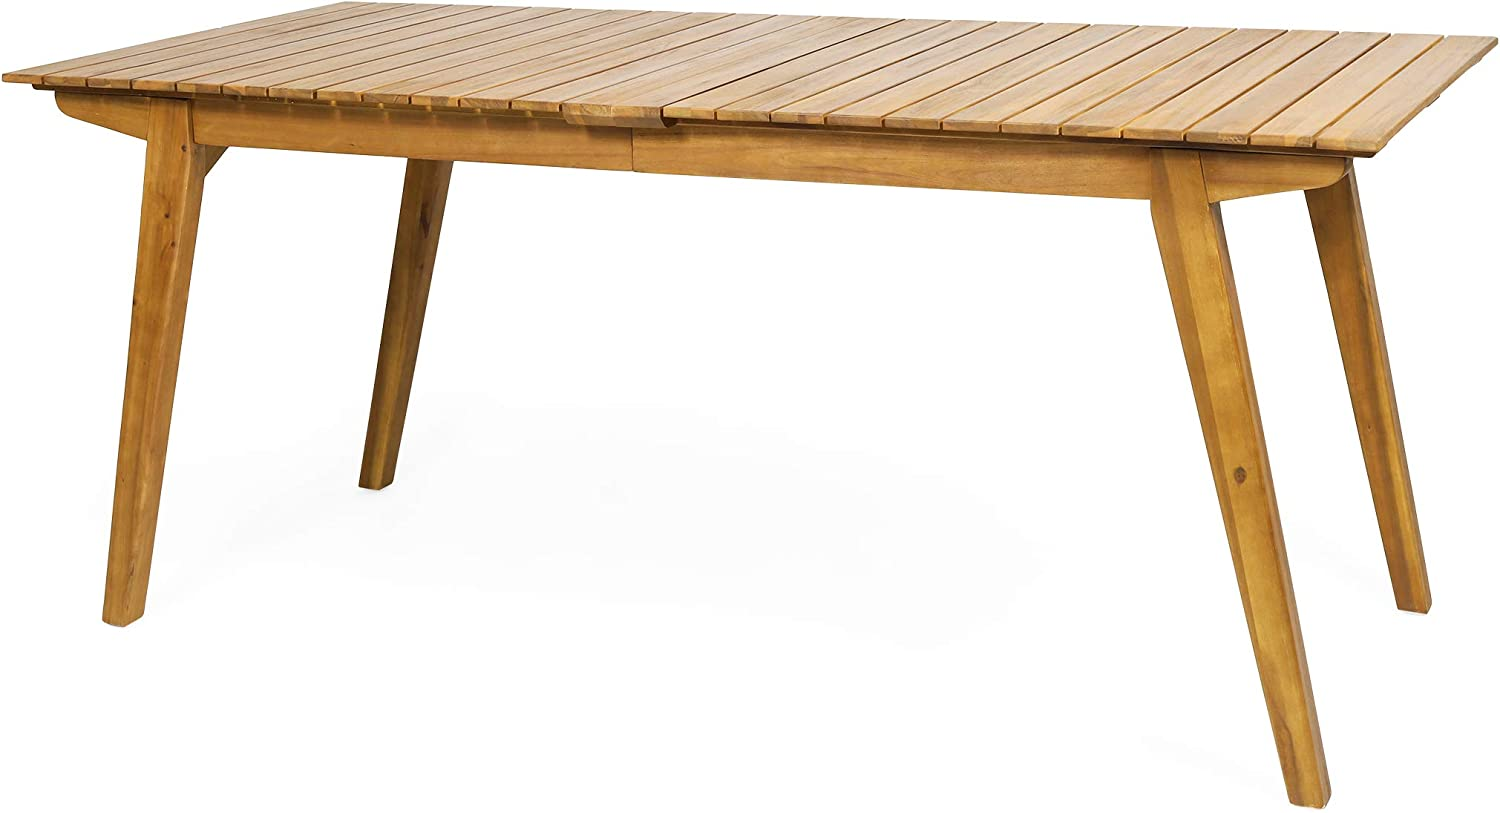 Christopher Knight Home 313209 Hannah Outdoor Rustic Acacia Wood Dining Table, Teak